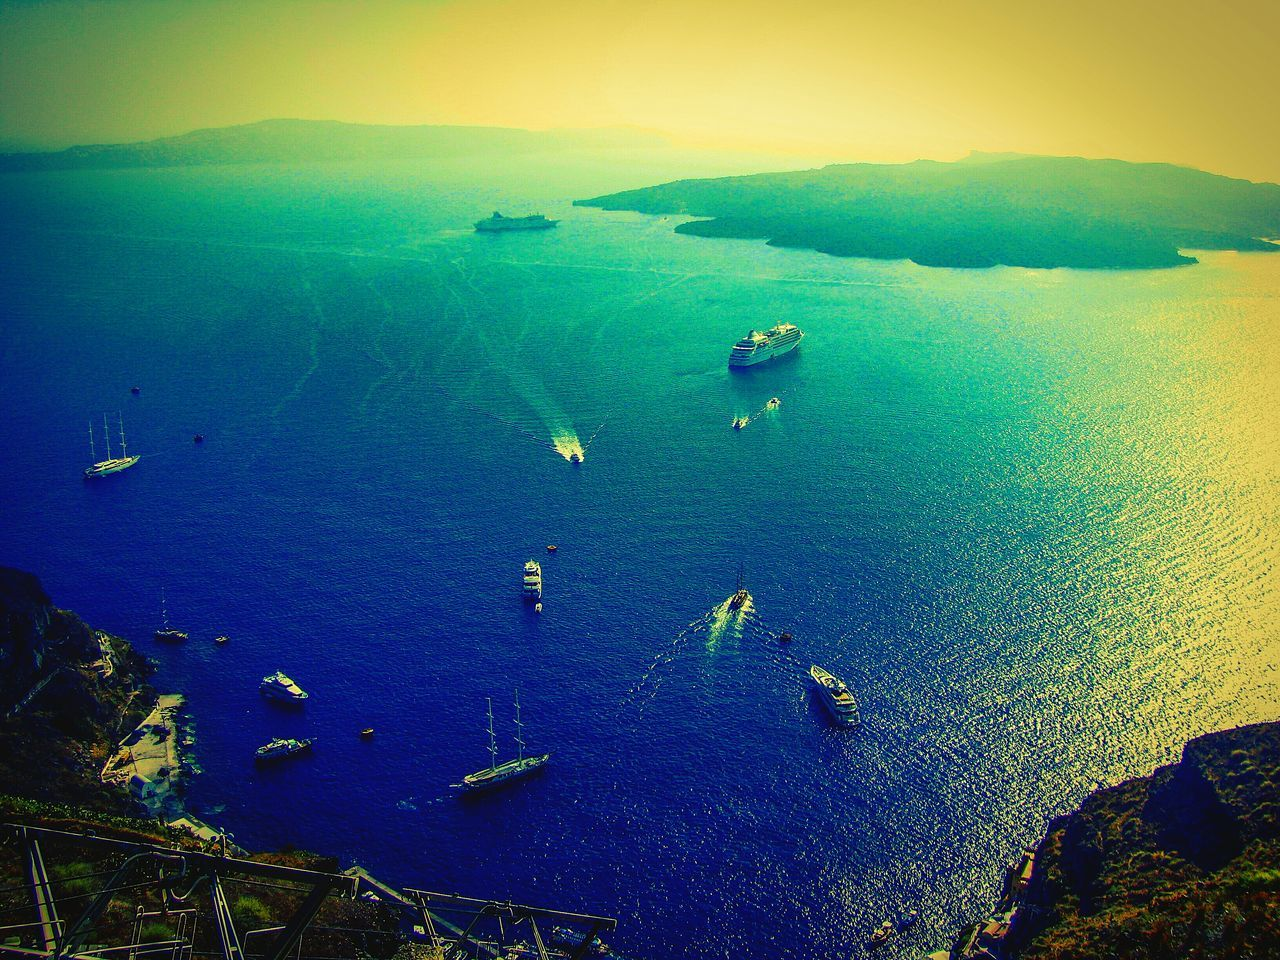 nautical vessel, sea, transportation, water, high angle view, beauty in nature, mode of transport, scenics, nature, boat, tranquil scene, outdoors, tranquility, no people, ship, day, sunset, sky, sailing, mountain, yacht